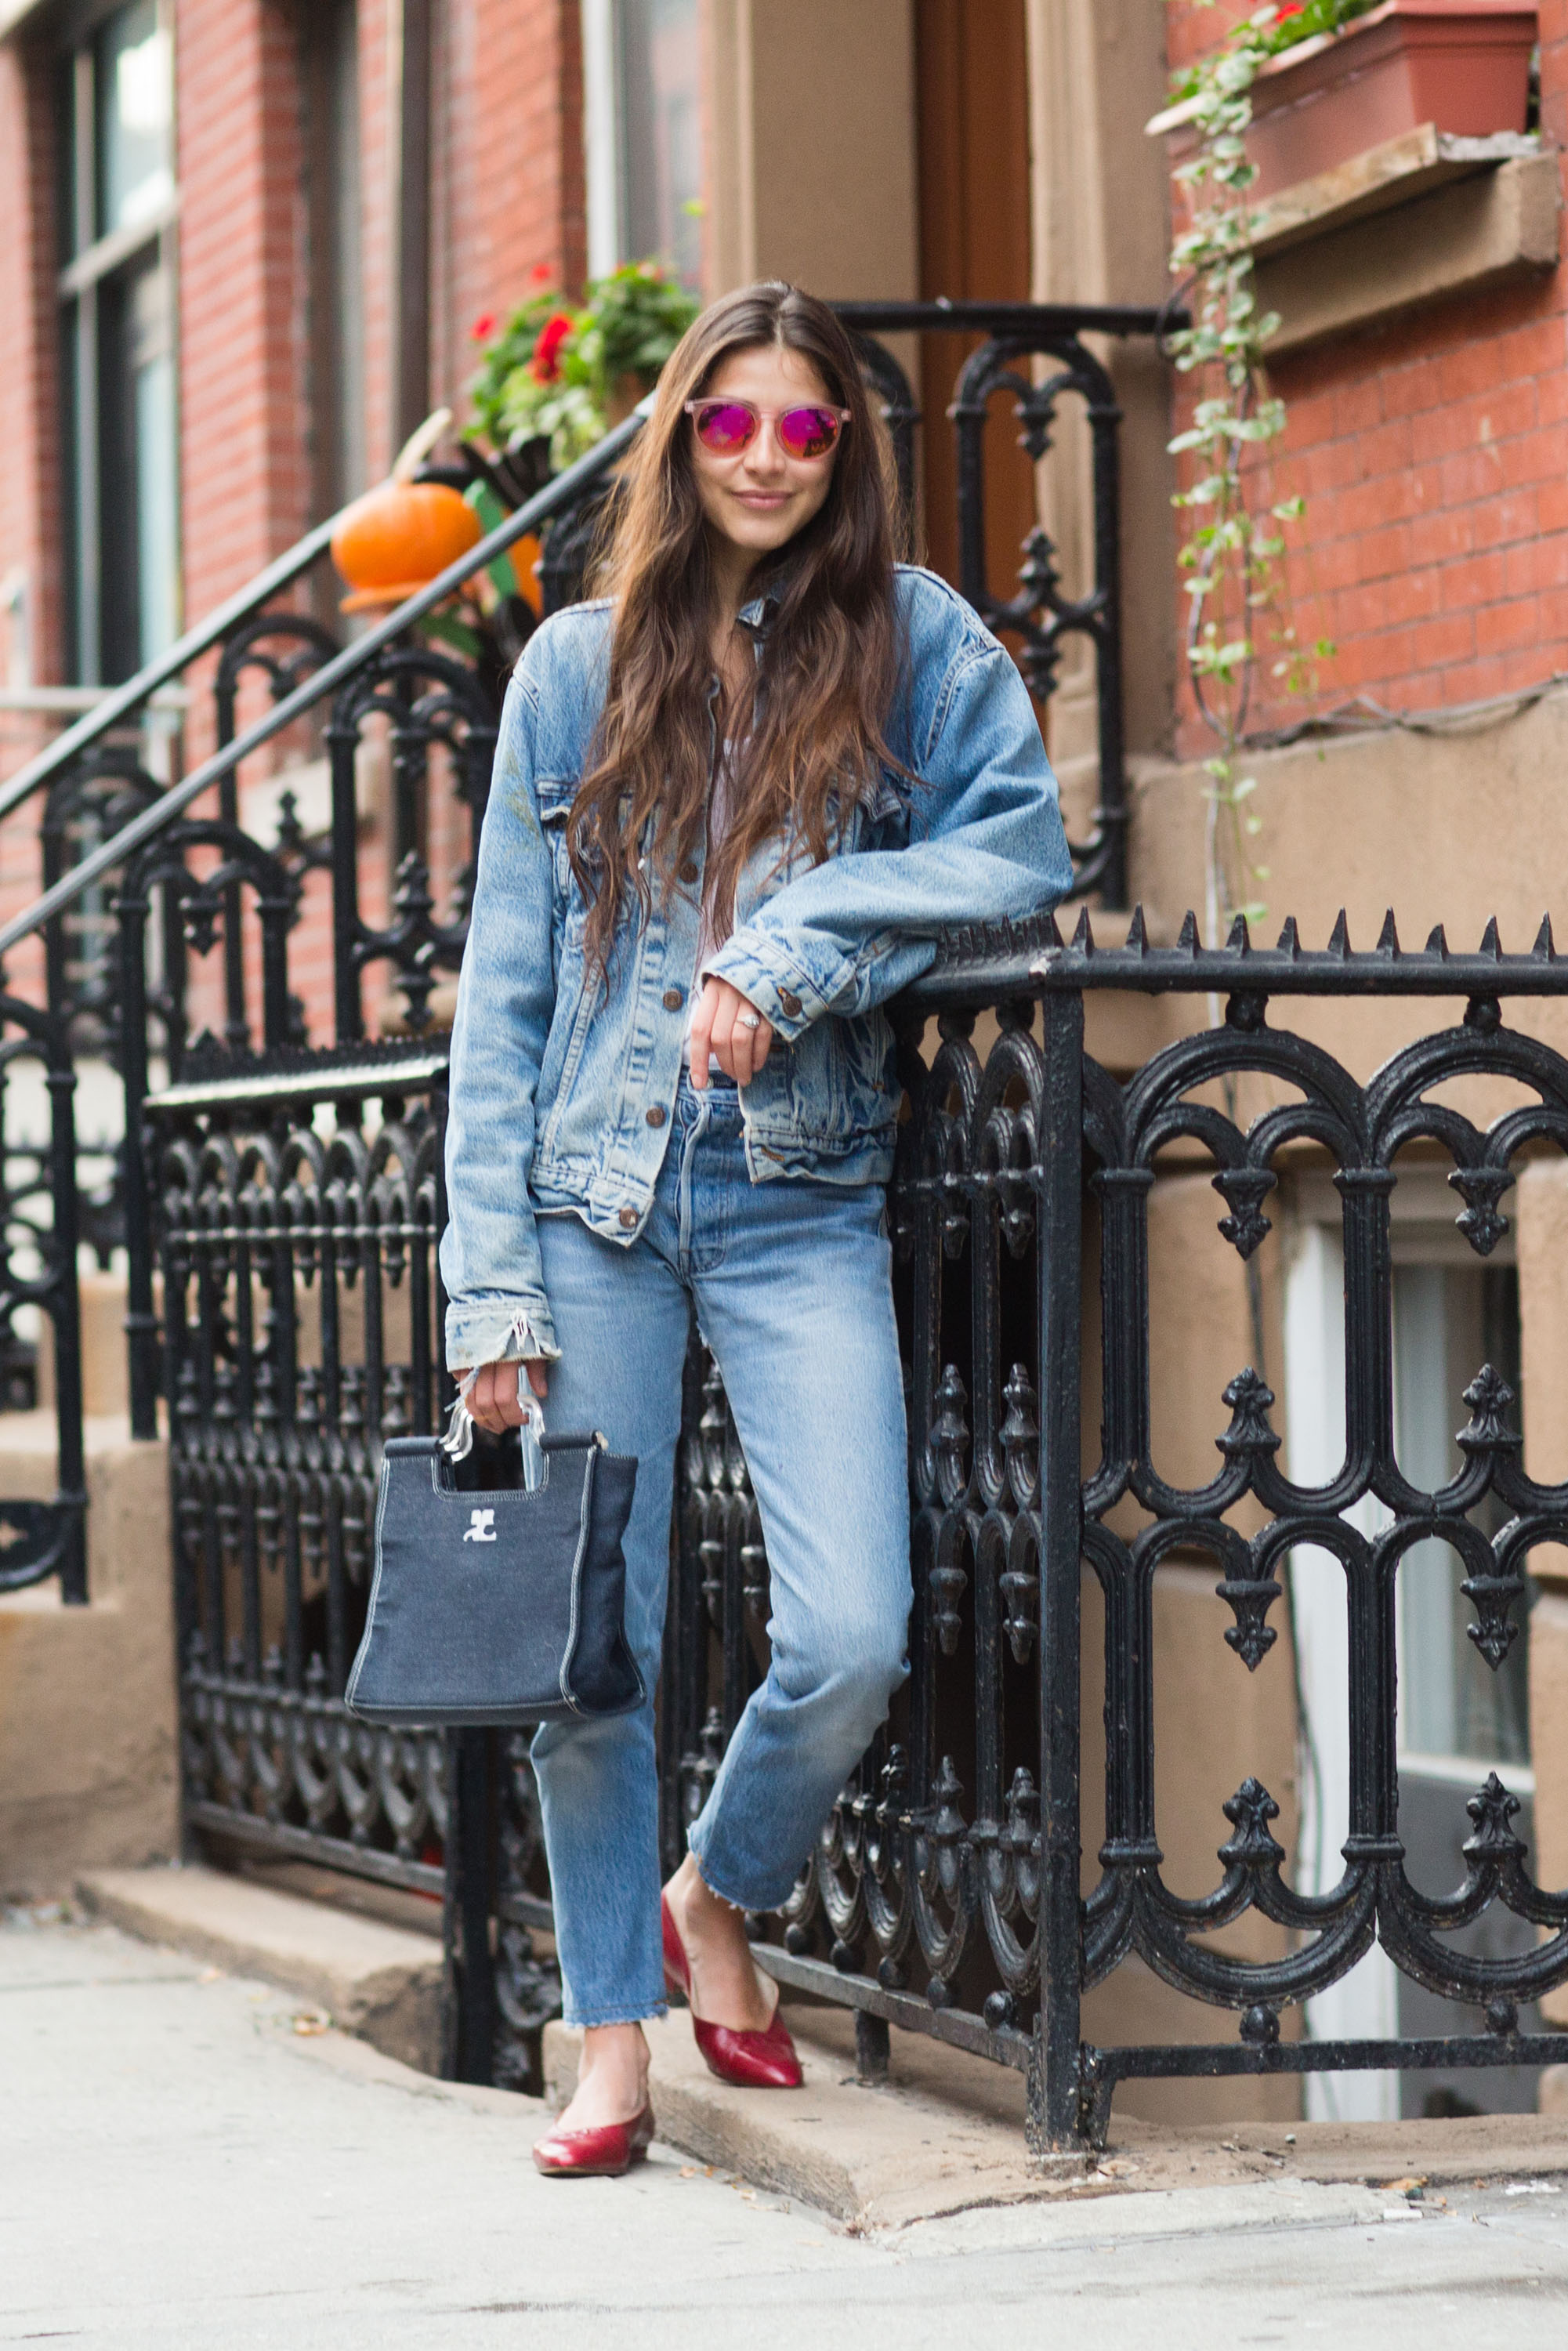 NEW YORK, NY - NOVEMBER 23: Writer and founder of Definer app Felicity Sargent wears a vintage Levi's denim jacket, Club Monaco t-shirt, vintage Redun jeans, Chanel flats, and Courrges bag in Chelsea on November 23, 2014 in New York City. (Photo by Melodie Jeng/Getty Images)